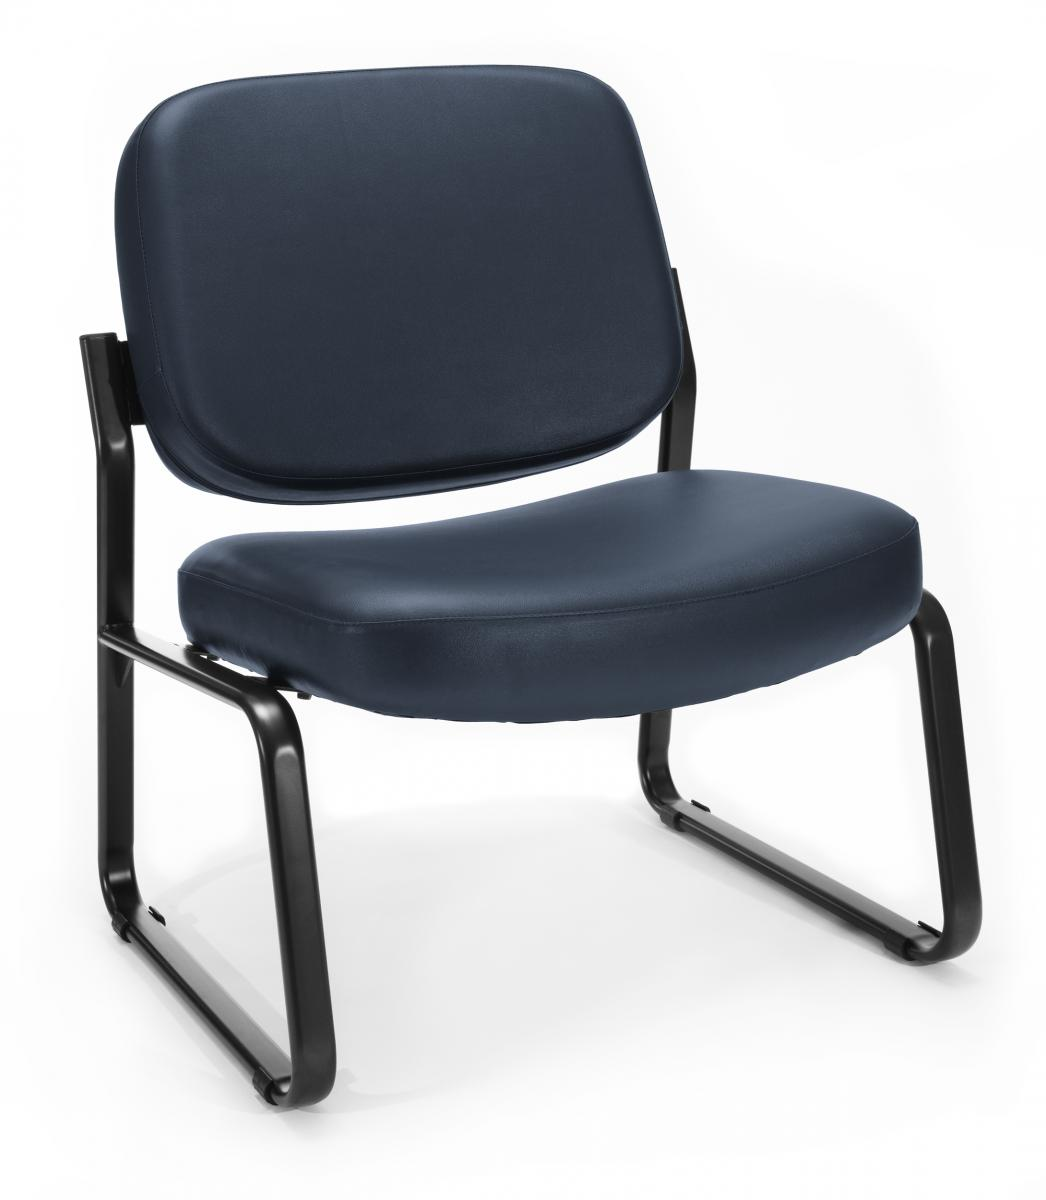 OFM Big & Tall Anti-Microbial/Anti-Bacterial Chair